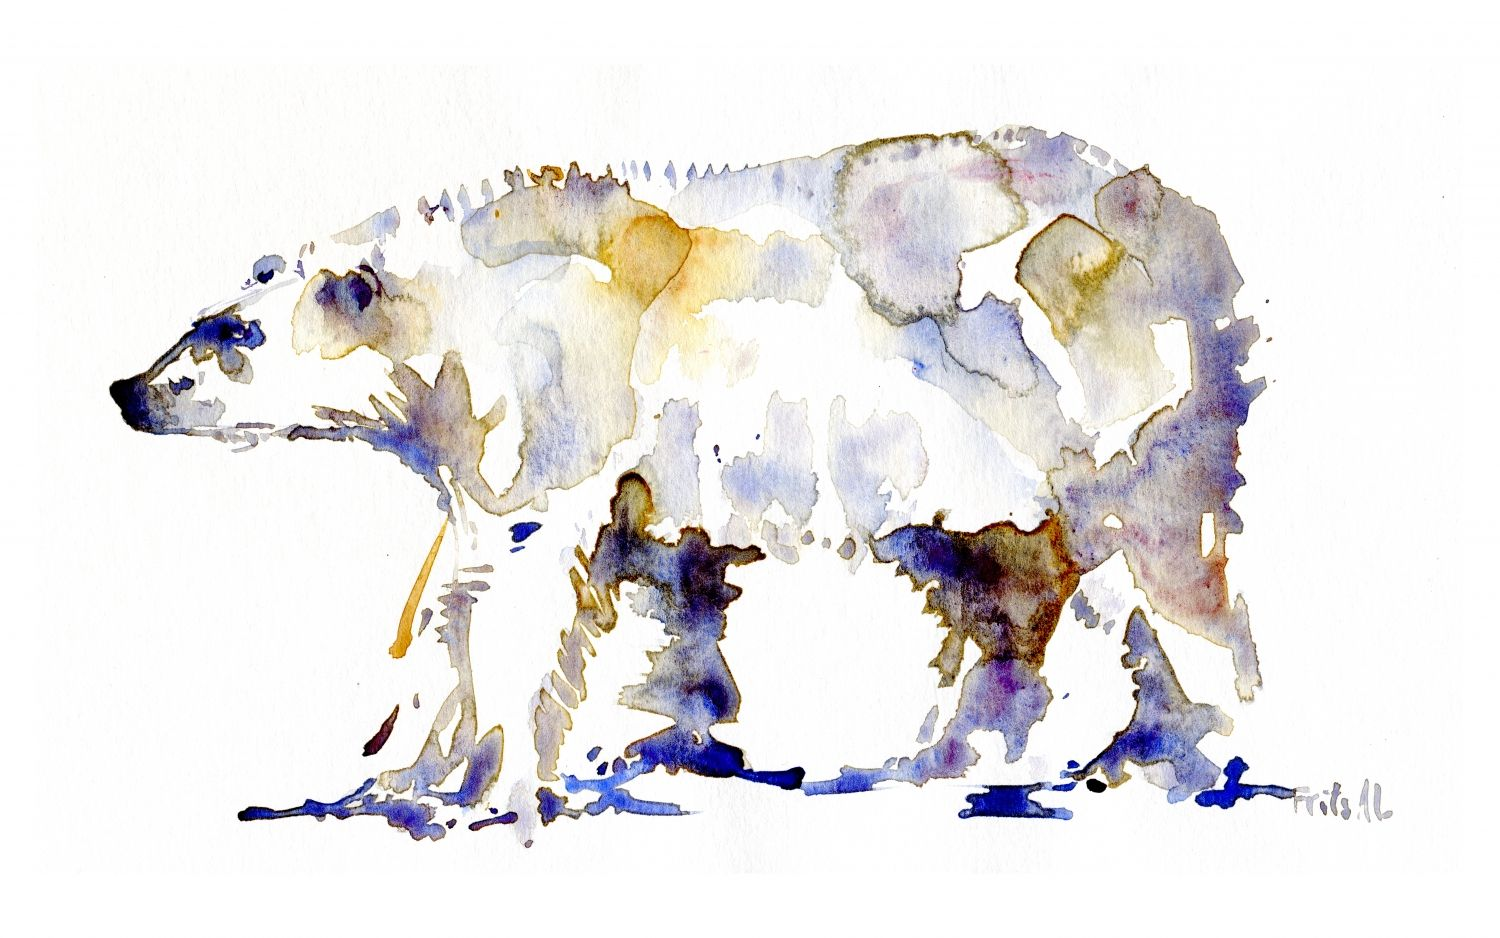 http://watercolor361.rssing.com/chan-39528429/all_p2.html